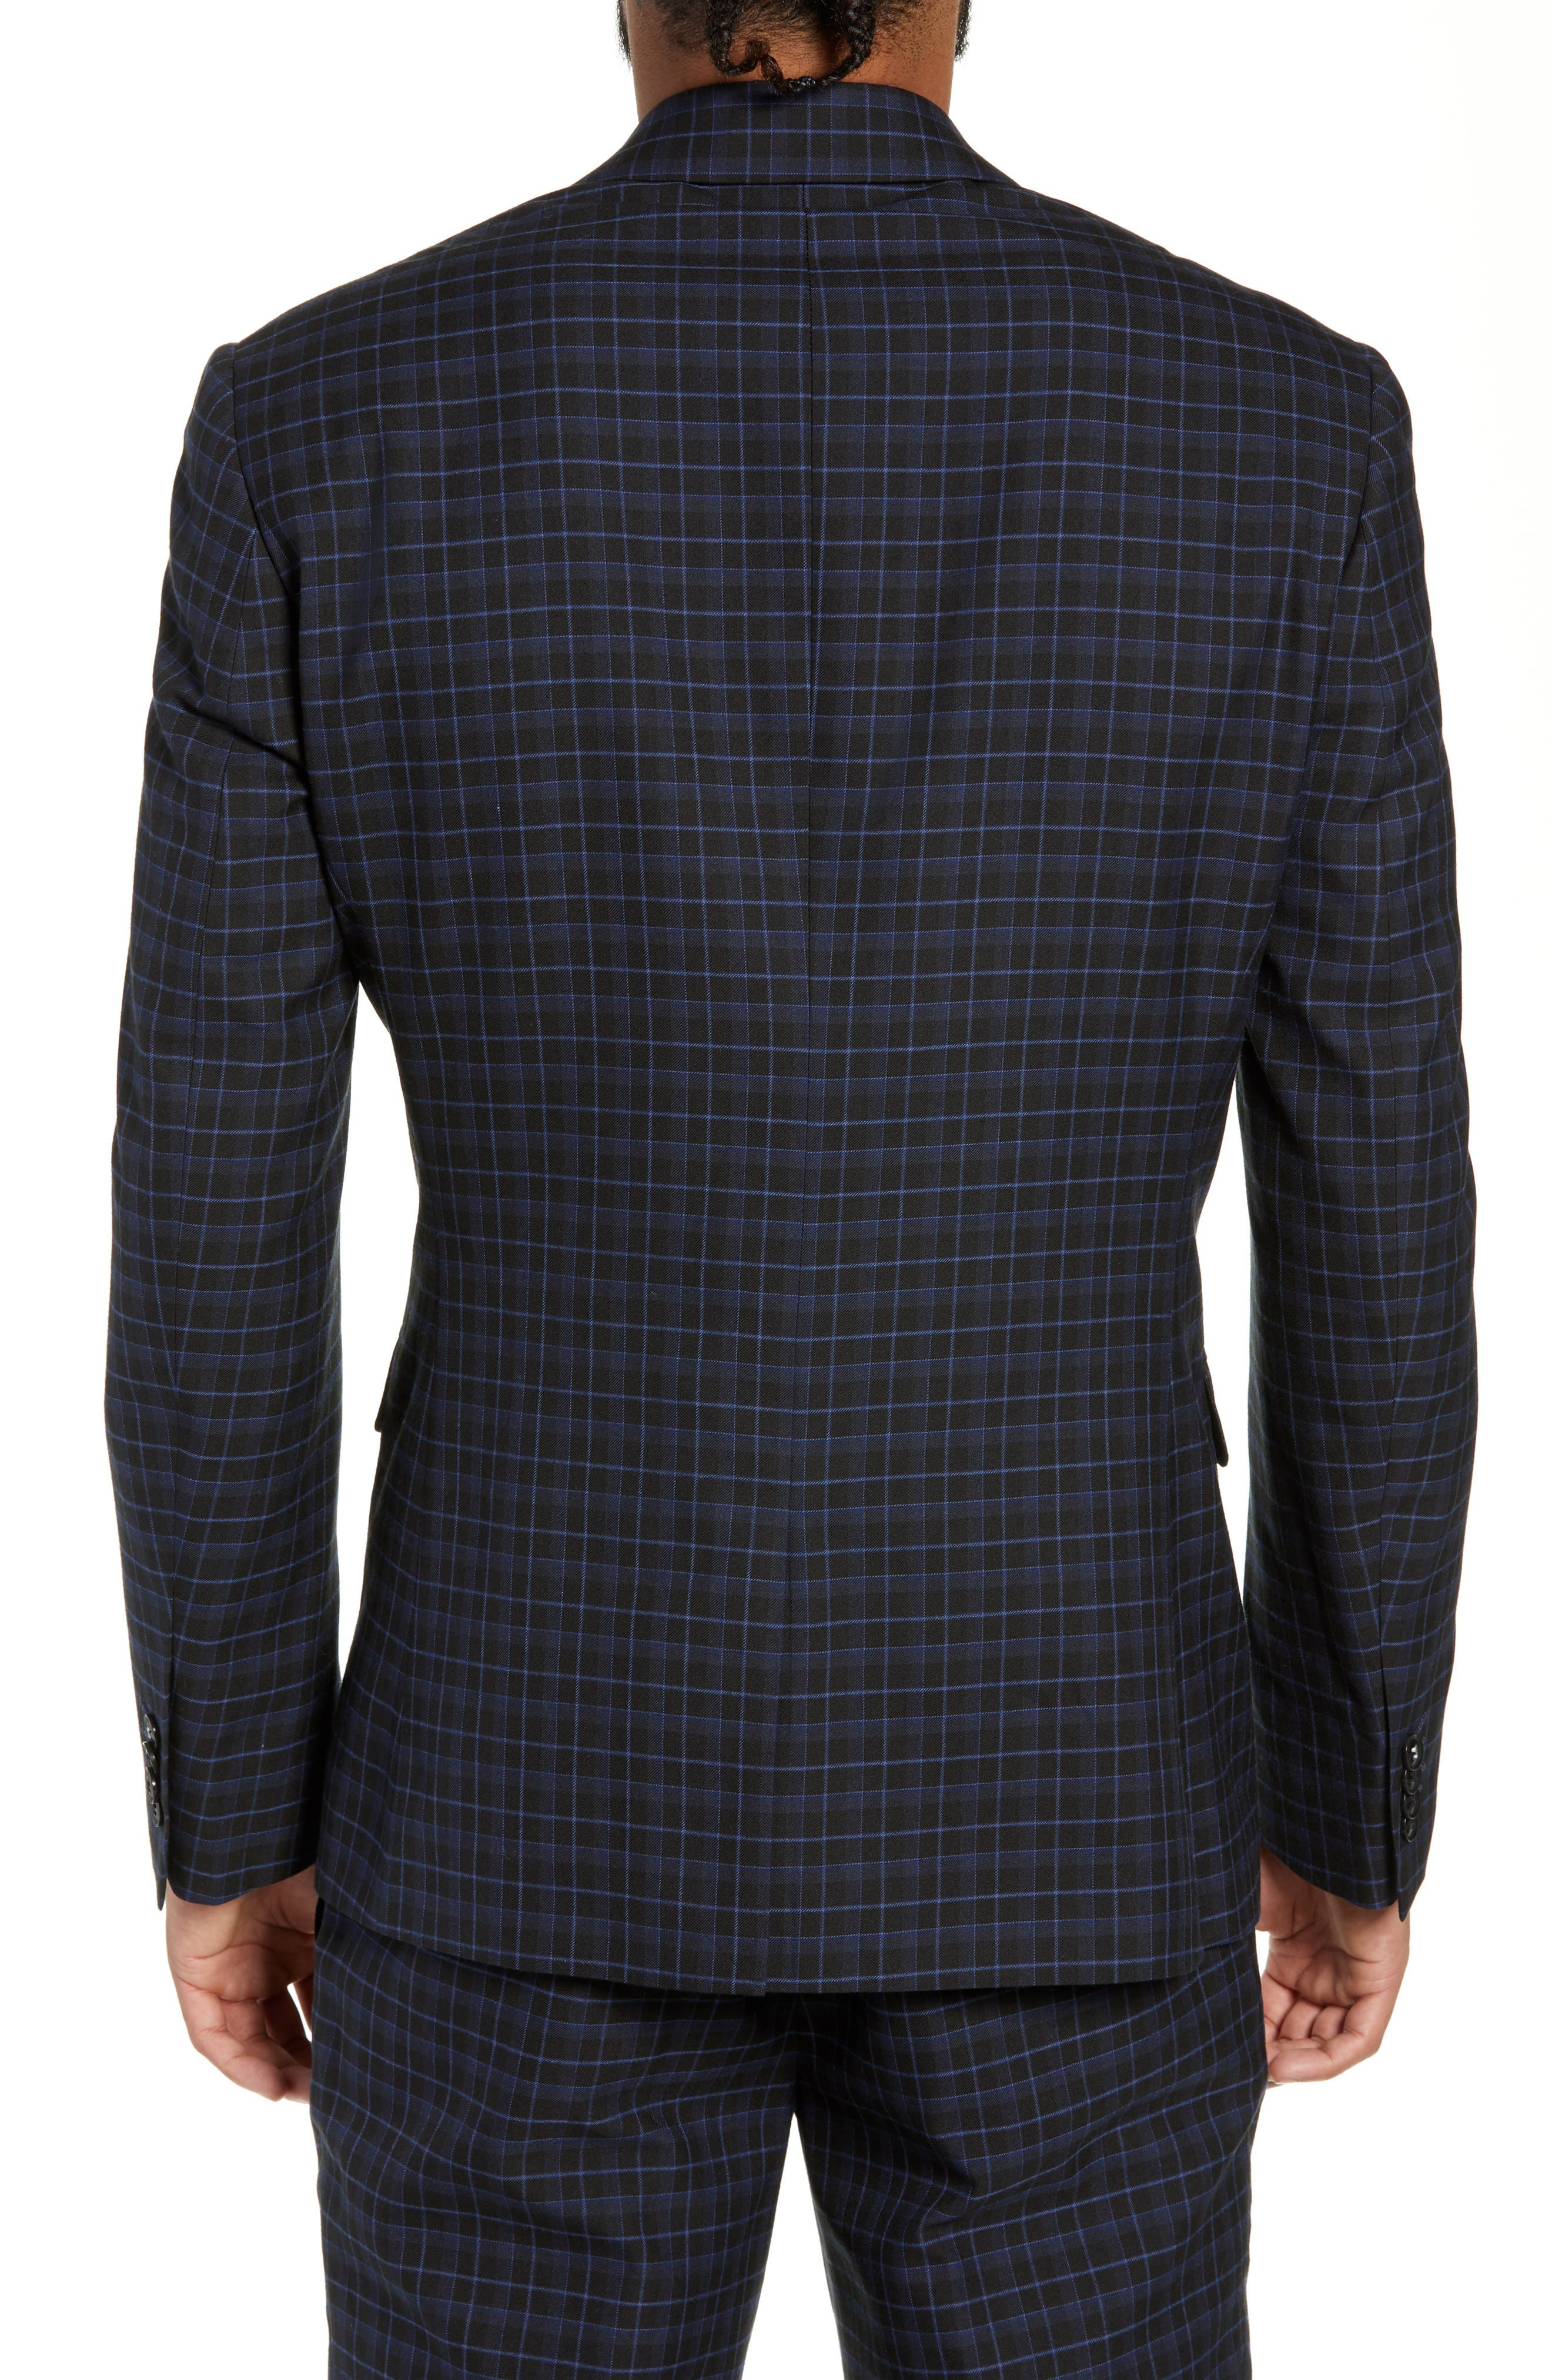 Alsager Slim Fit Check Suit Jacket,                             Alternate thumbnail 2, color,                             021